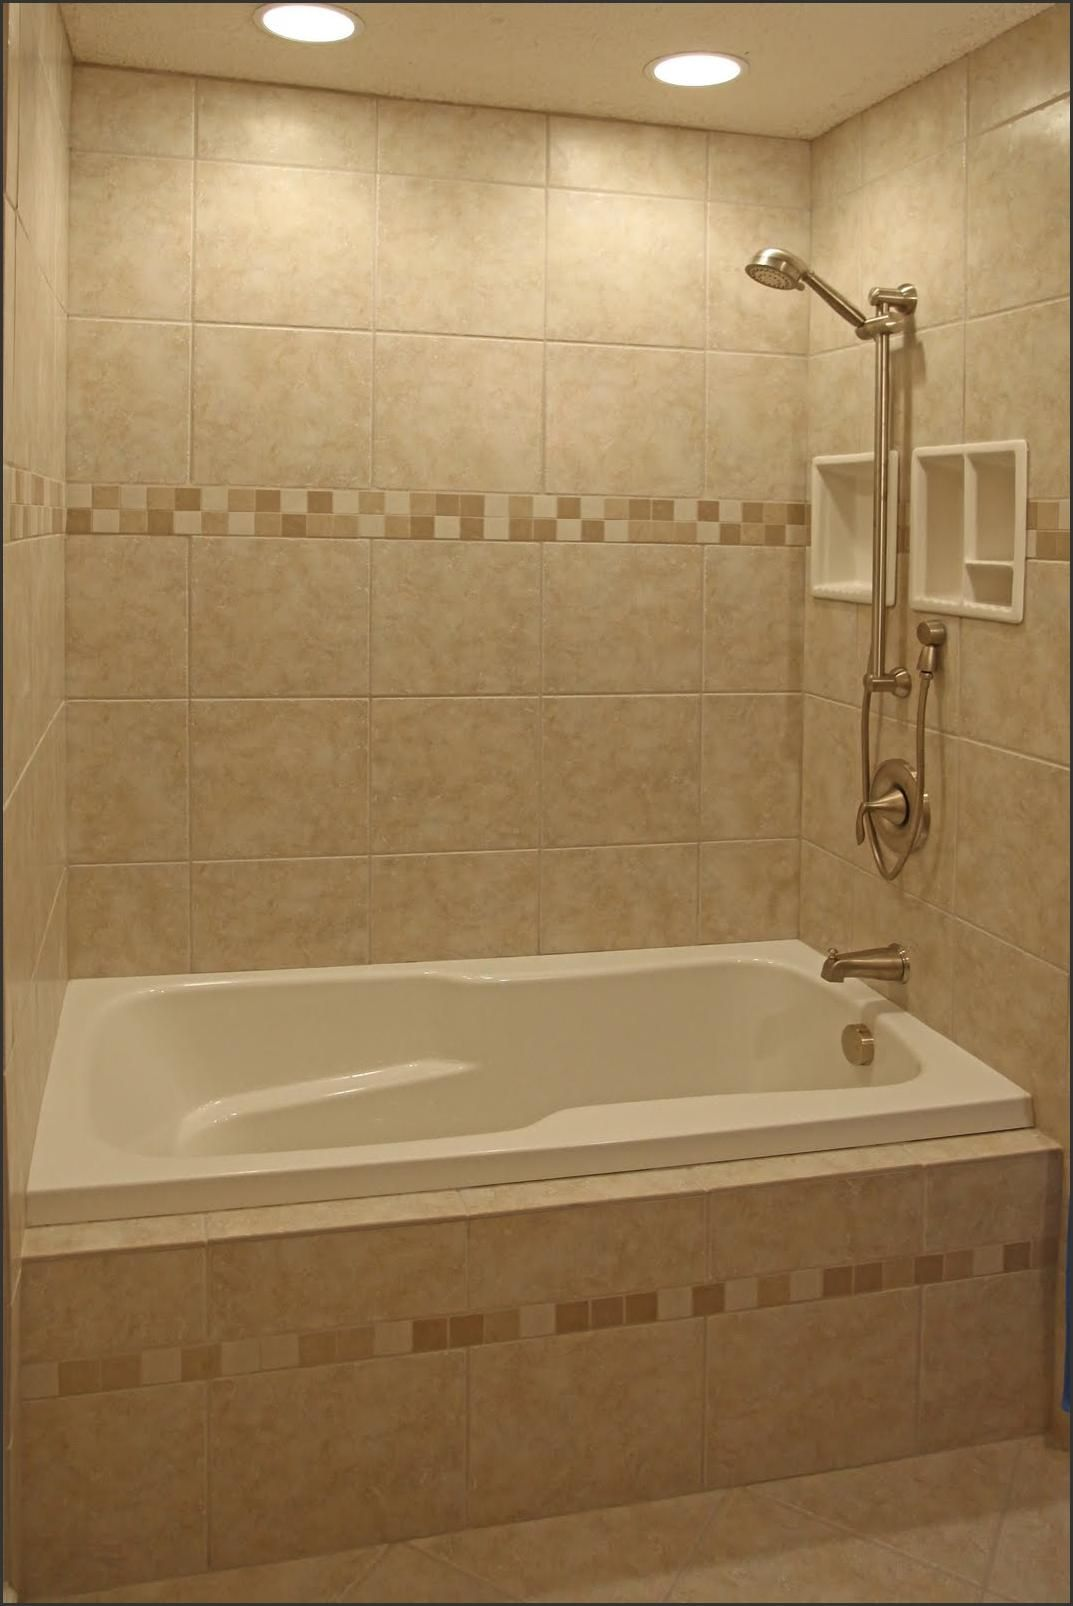 Love everything in this tub insert neutral warm tile with accent tile bathroom shower design ideas ceramic recessed lighting on dimmer nothing like having lights above you dailygadgetfo Images